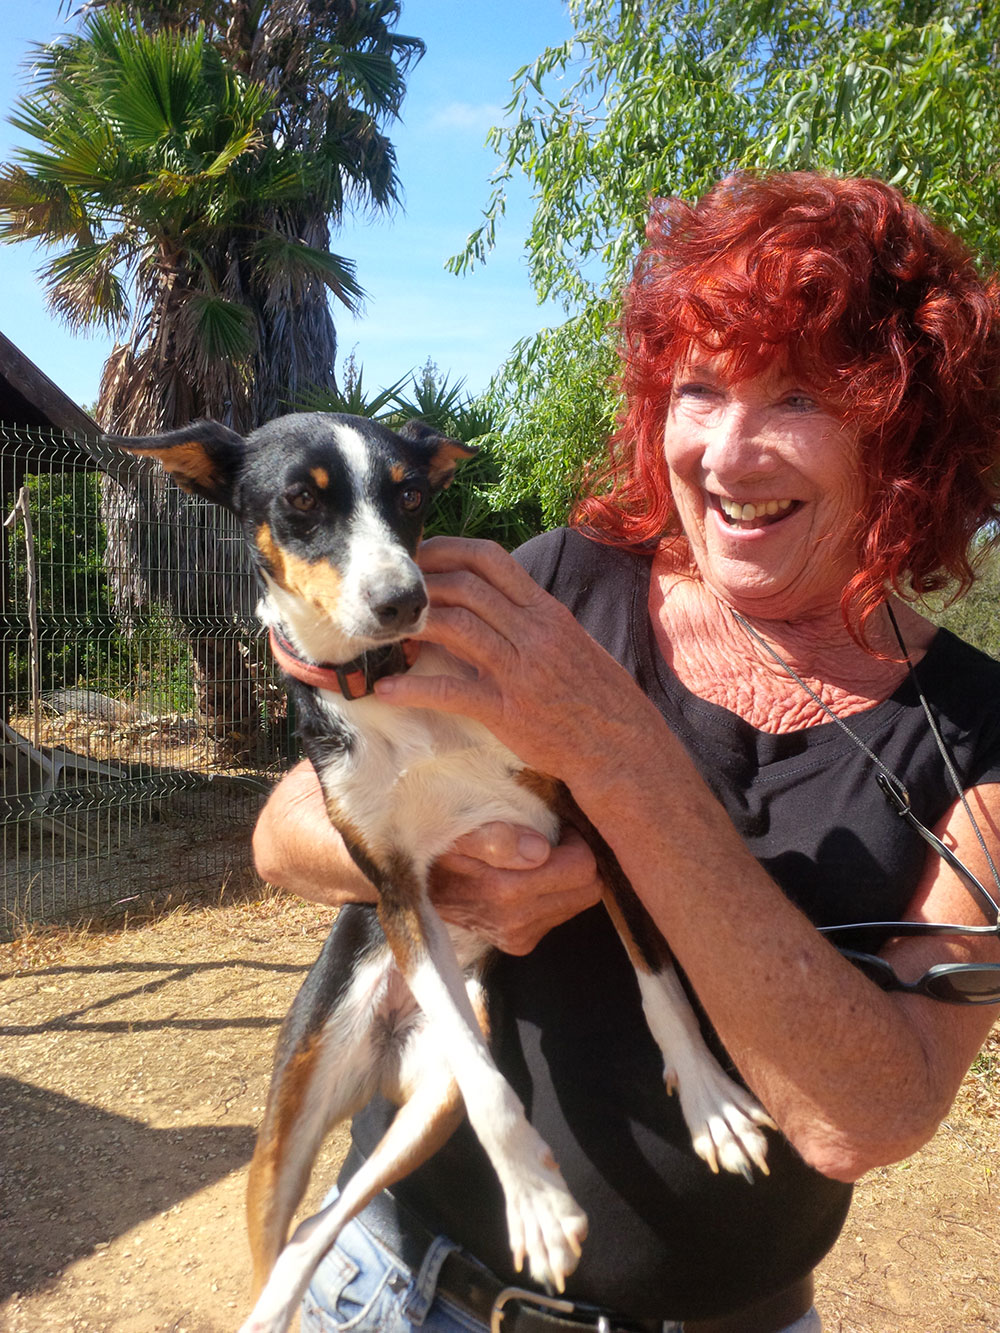 Heather from Barking Mad Kennels with her dog Pixie. Heather rescued Pixie after an accident, had her patched up, and decided to keep her. Then last year Pixie ate one (or more) of those terrible caterpillars and nearly died. She spent three days on a drip with a swollen tongue, but fortunately recovered and is once more in perfect health.